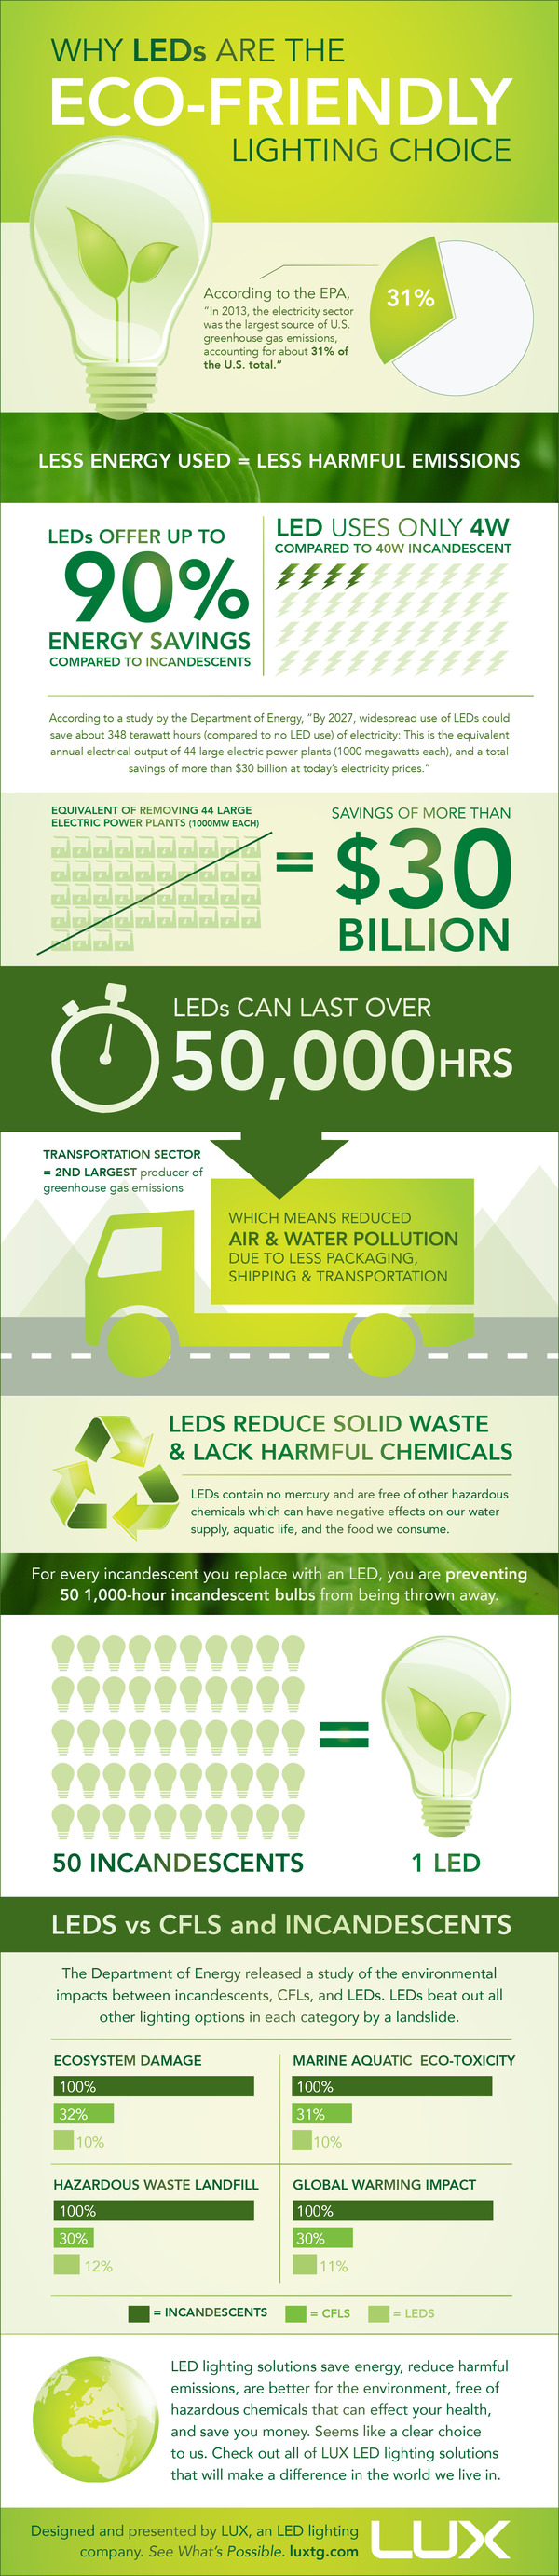 Why LEDs Are the Eco-Friendly Lighting Choice